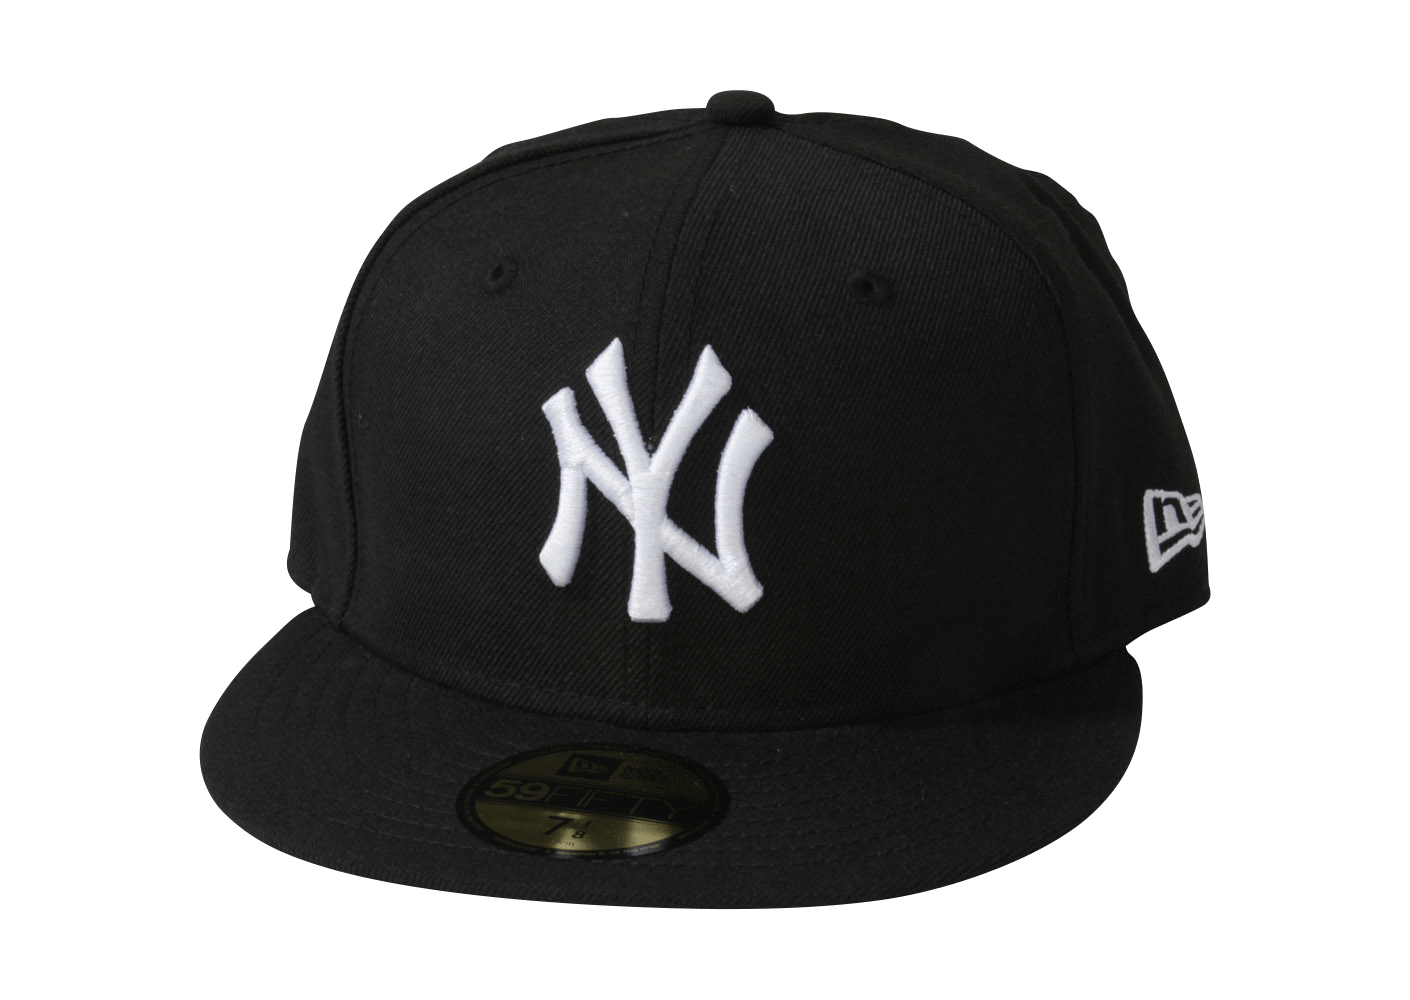 new era casquette mlb new york noire black friday chausport. Black Bedroom Furniture Sets. Home Design Ideas